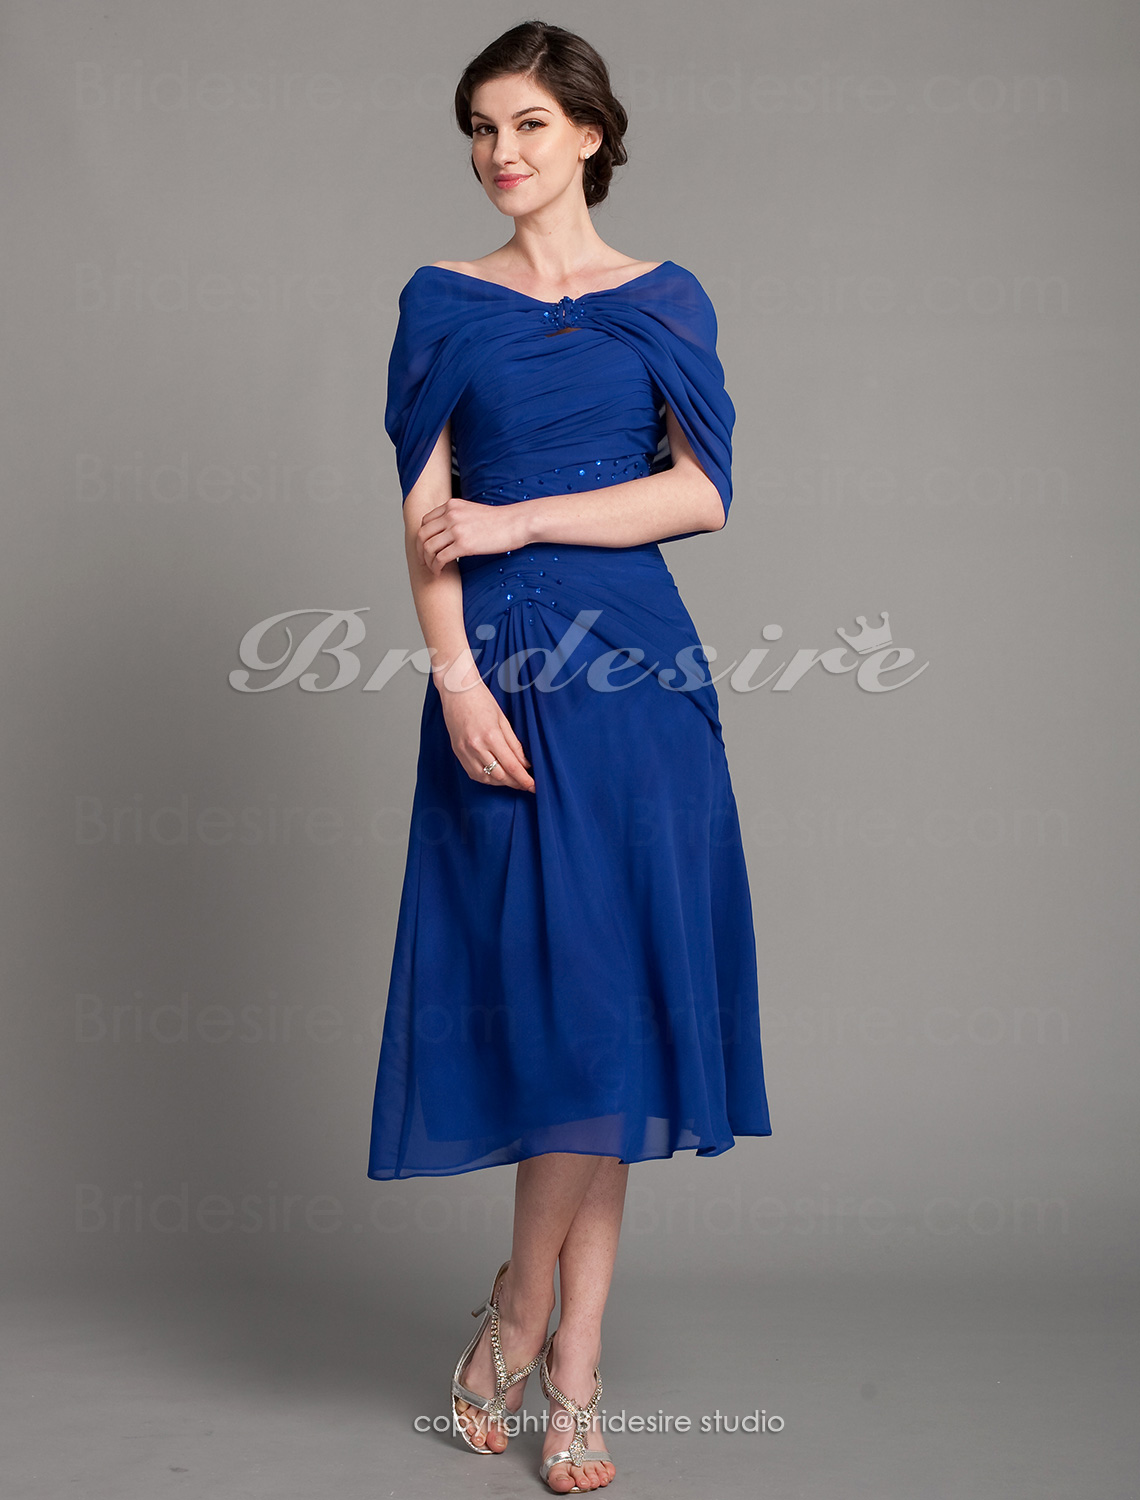 Sheath/ Column Chiffon Tea-length Sweetheart Mother of the Bride Dress With A Wrap